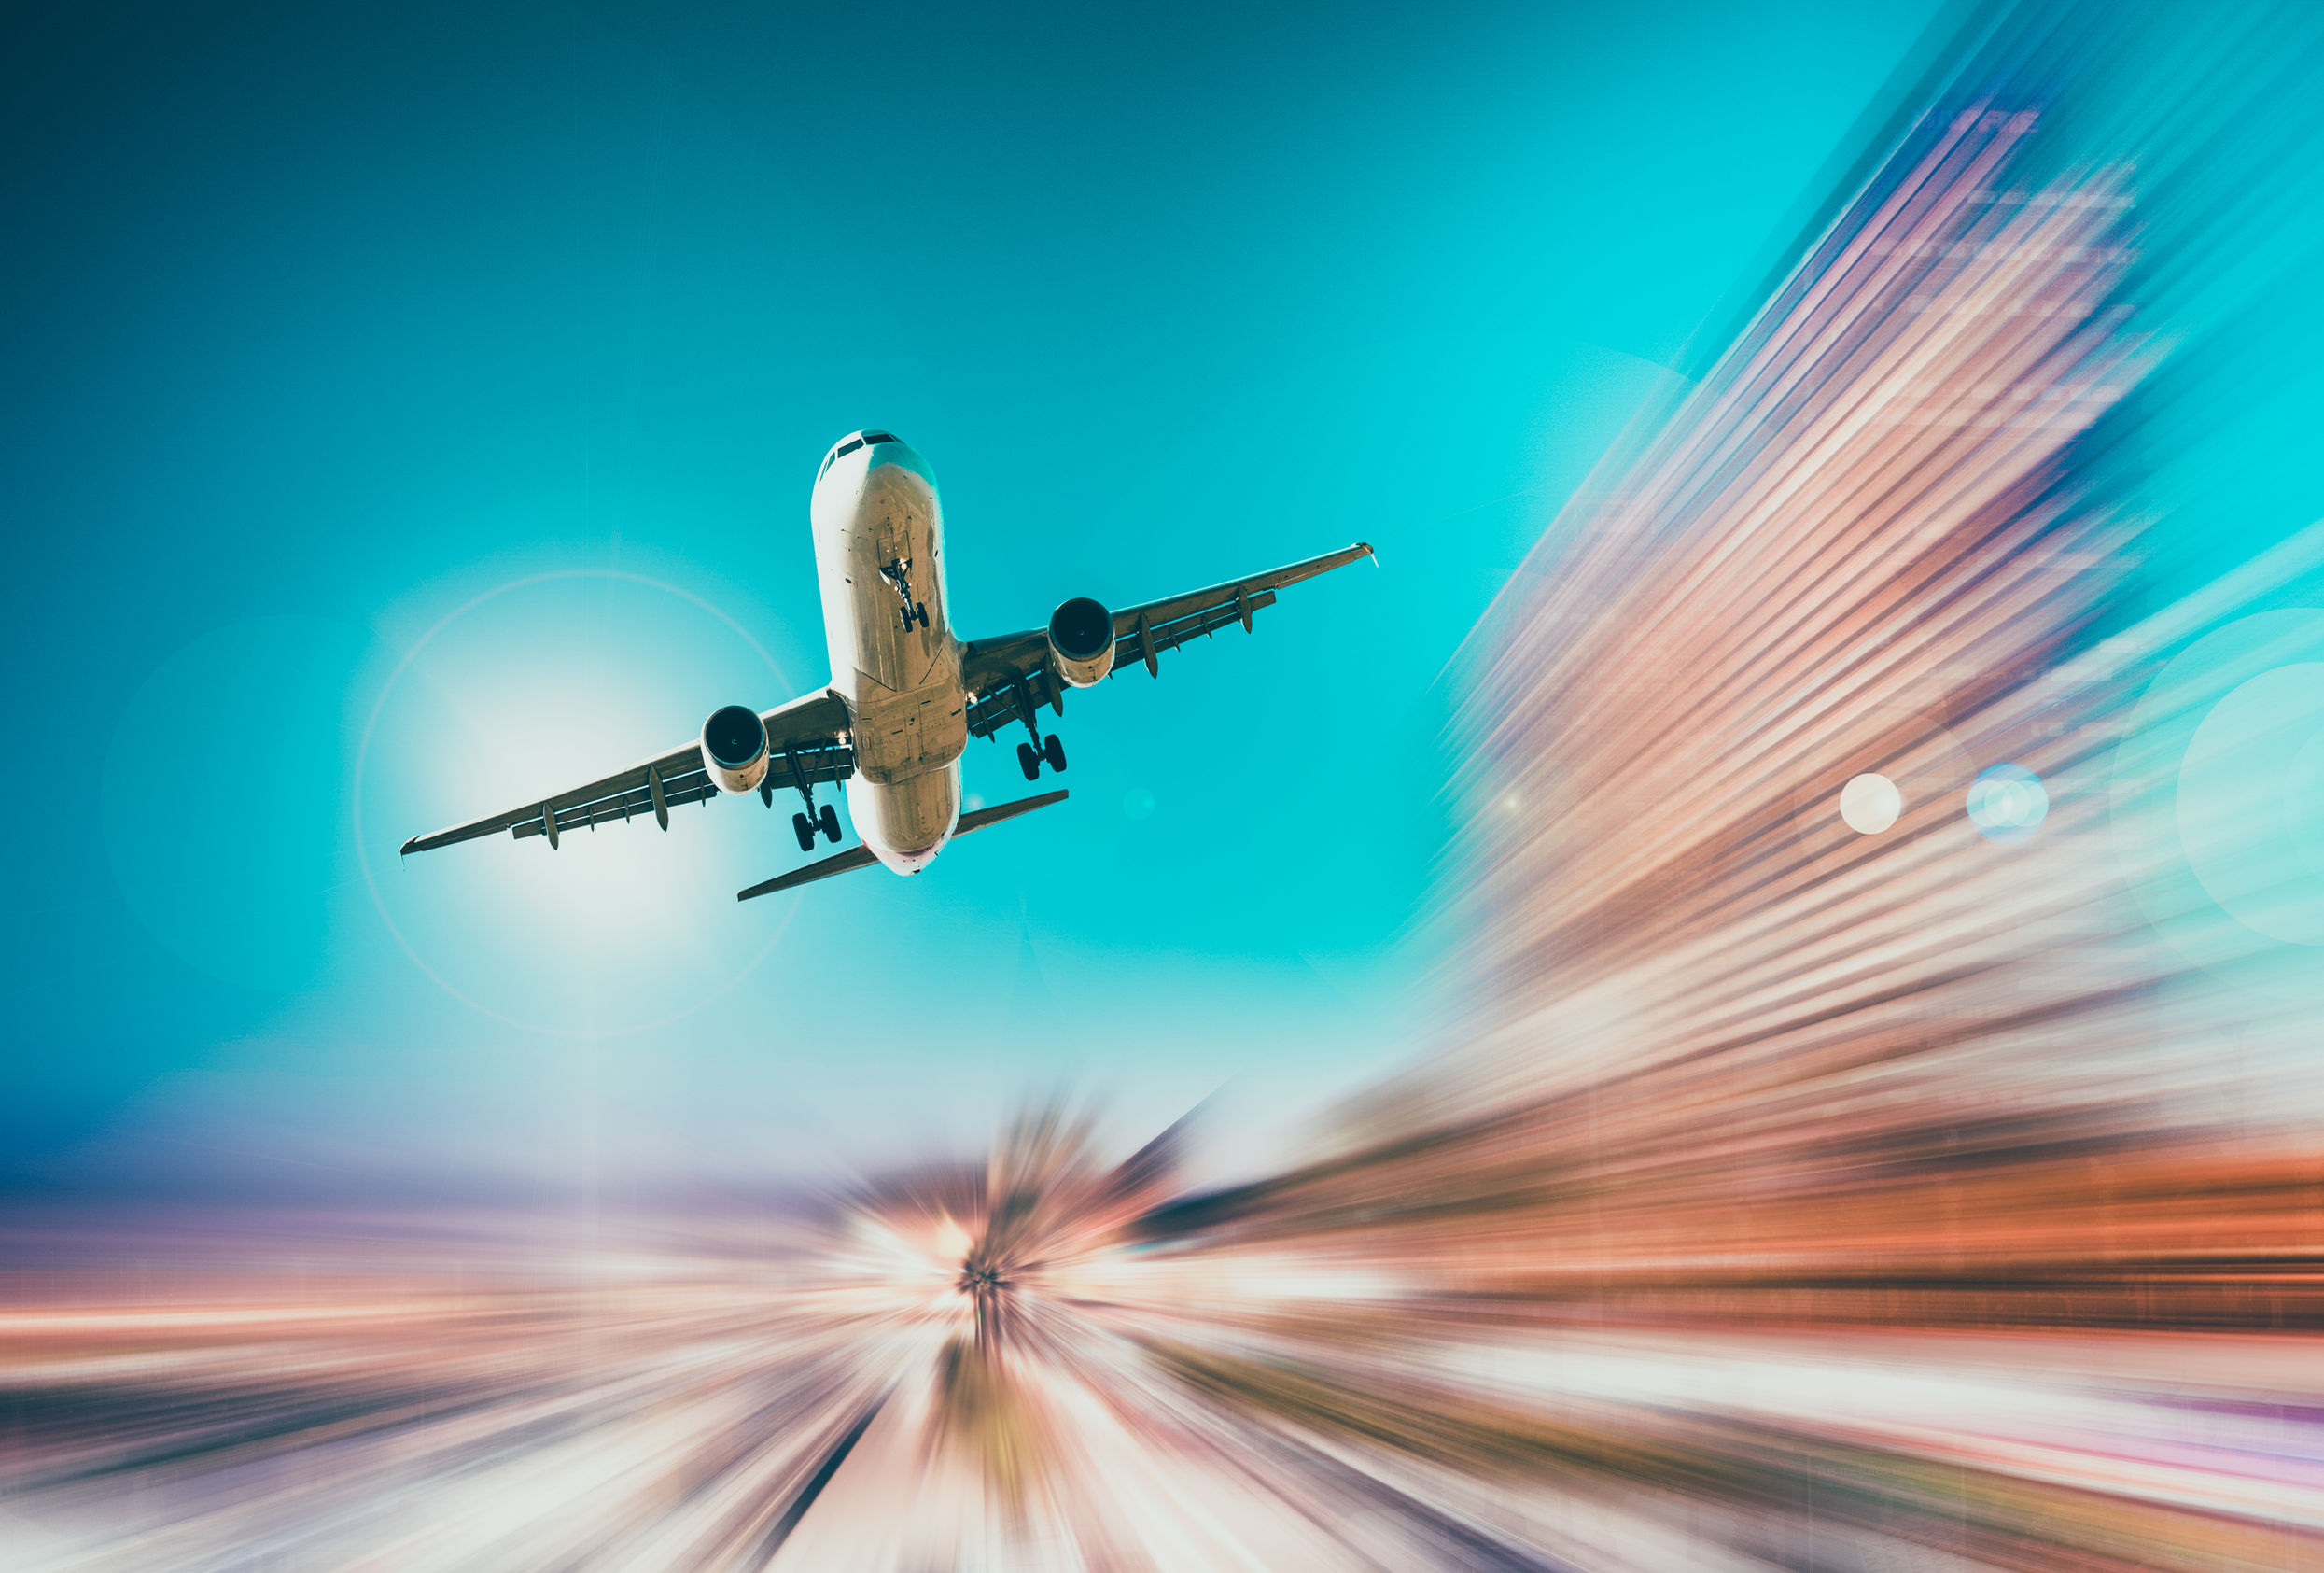 Best Branding Practices for the Aviation Industry